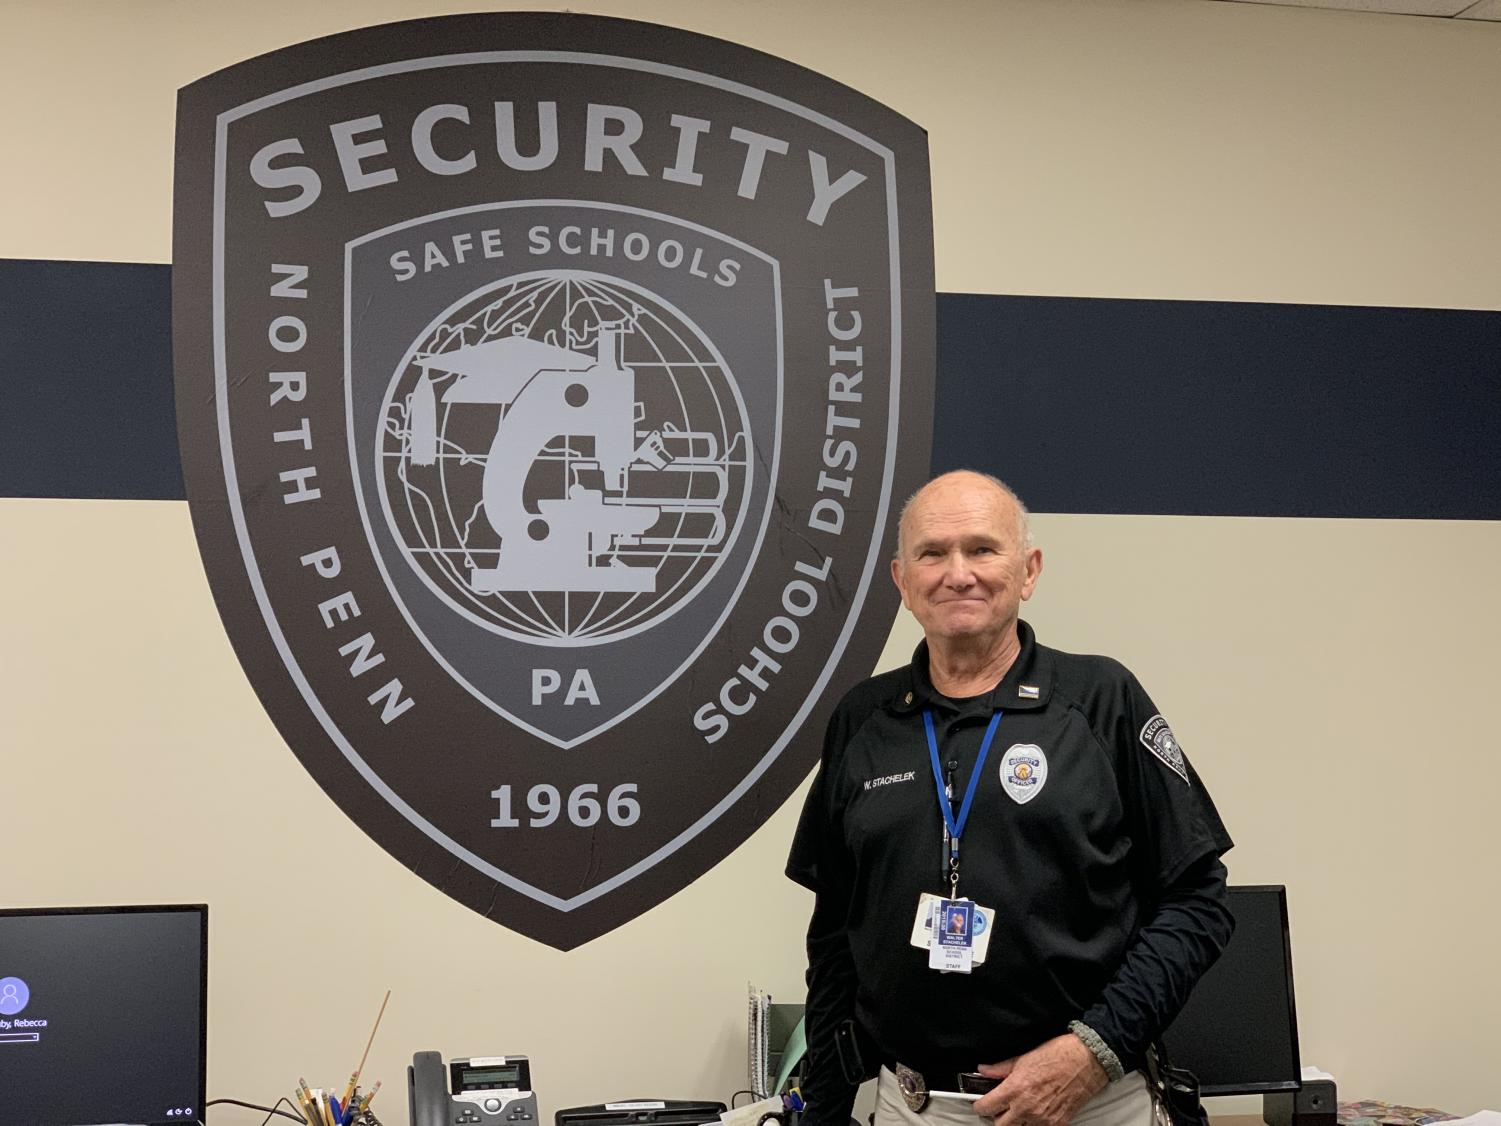 After working 21 years in the district, Mr. Walter Stachelek will be retiring.